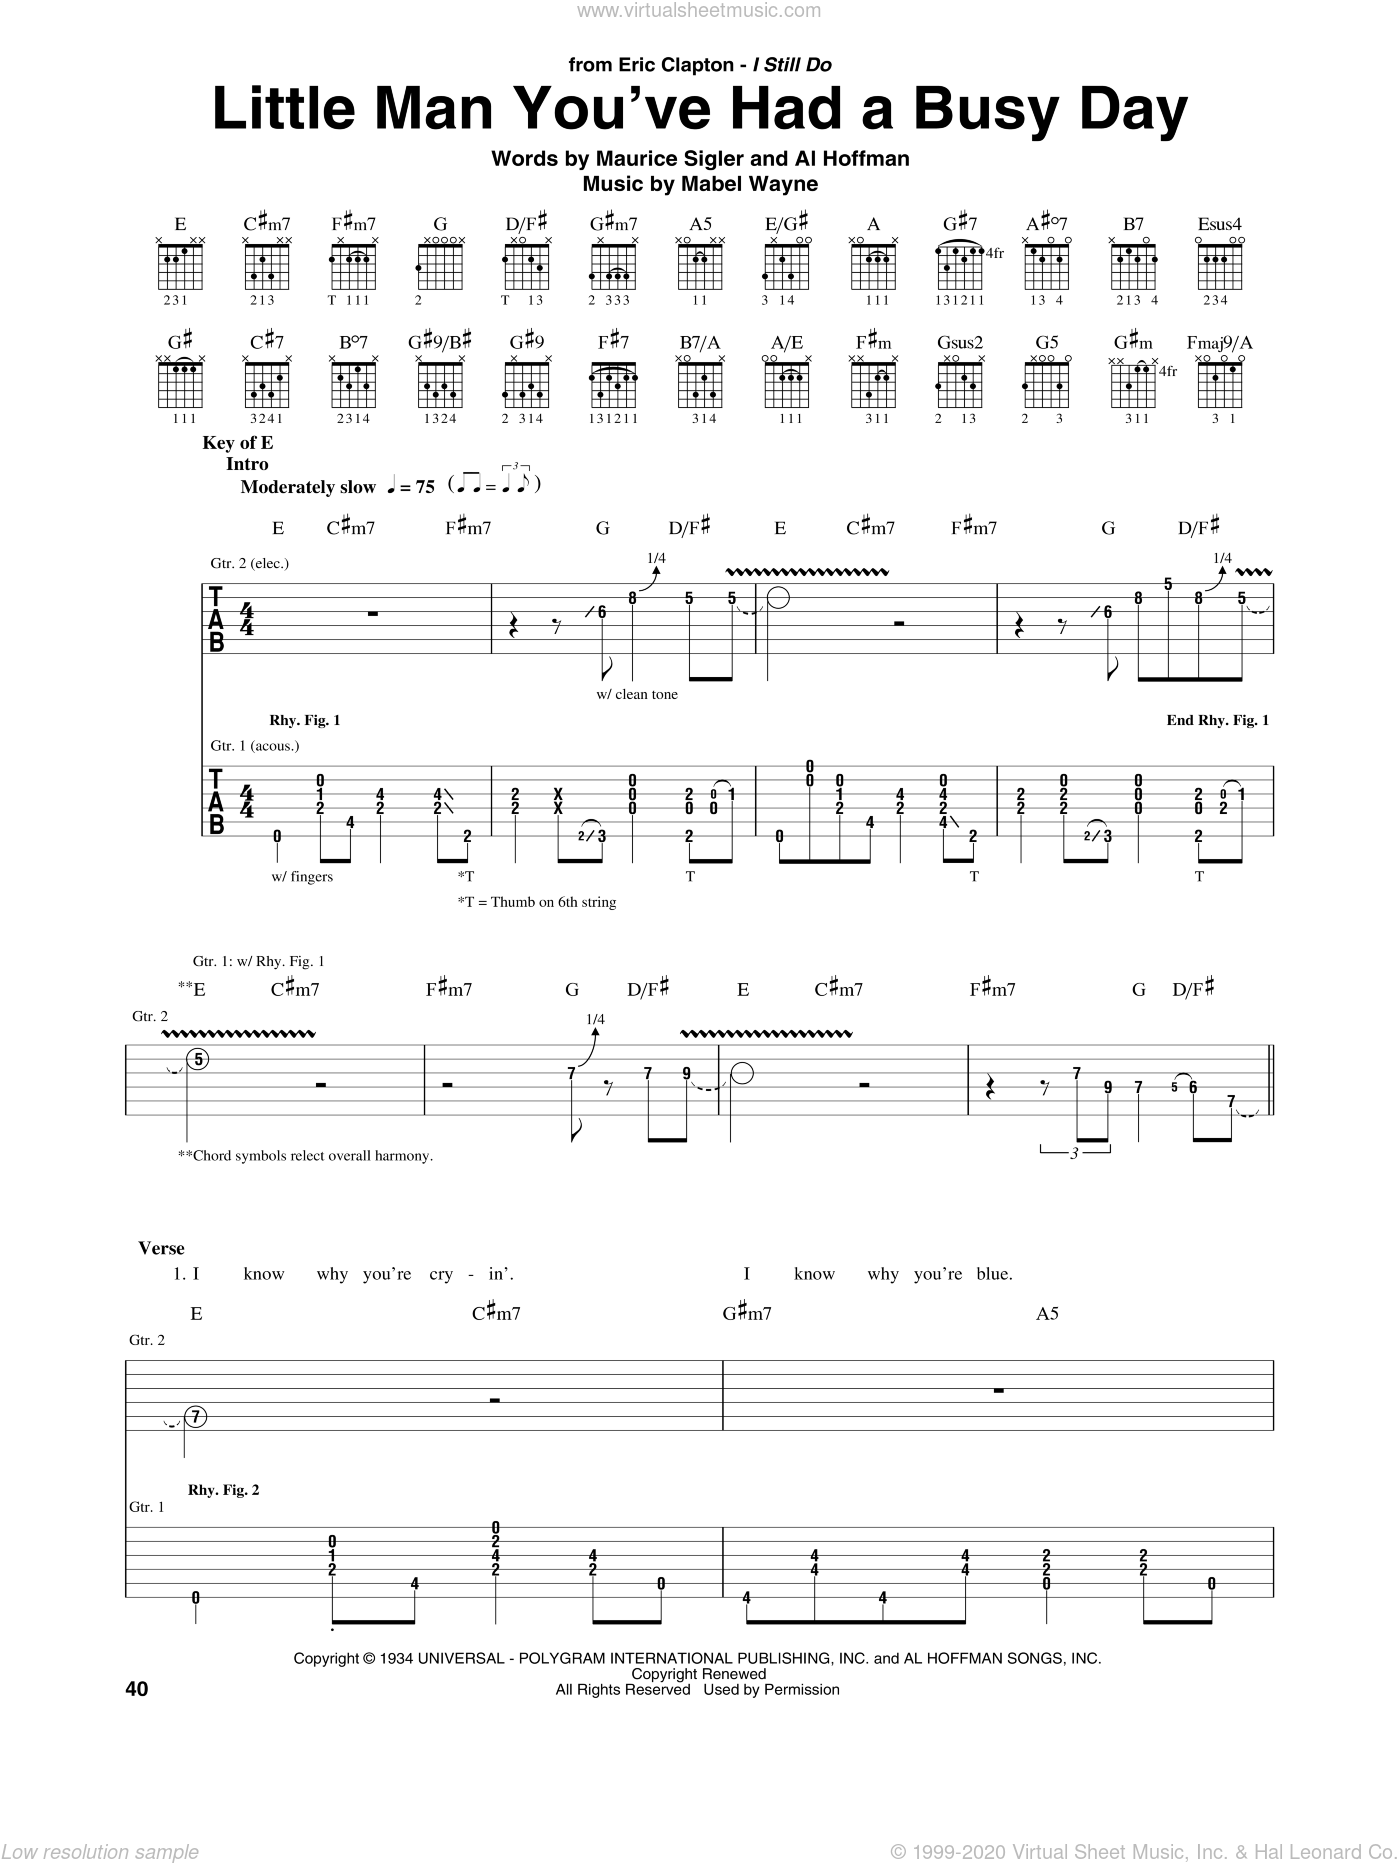 Little Man You've Had A Busy Day sheet music for guitar (rhythm tablature) by Maurice Sigler, Eric Clapton, Al Hoffman and Mabel Wayne. Score Image Preview.